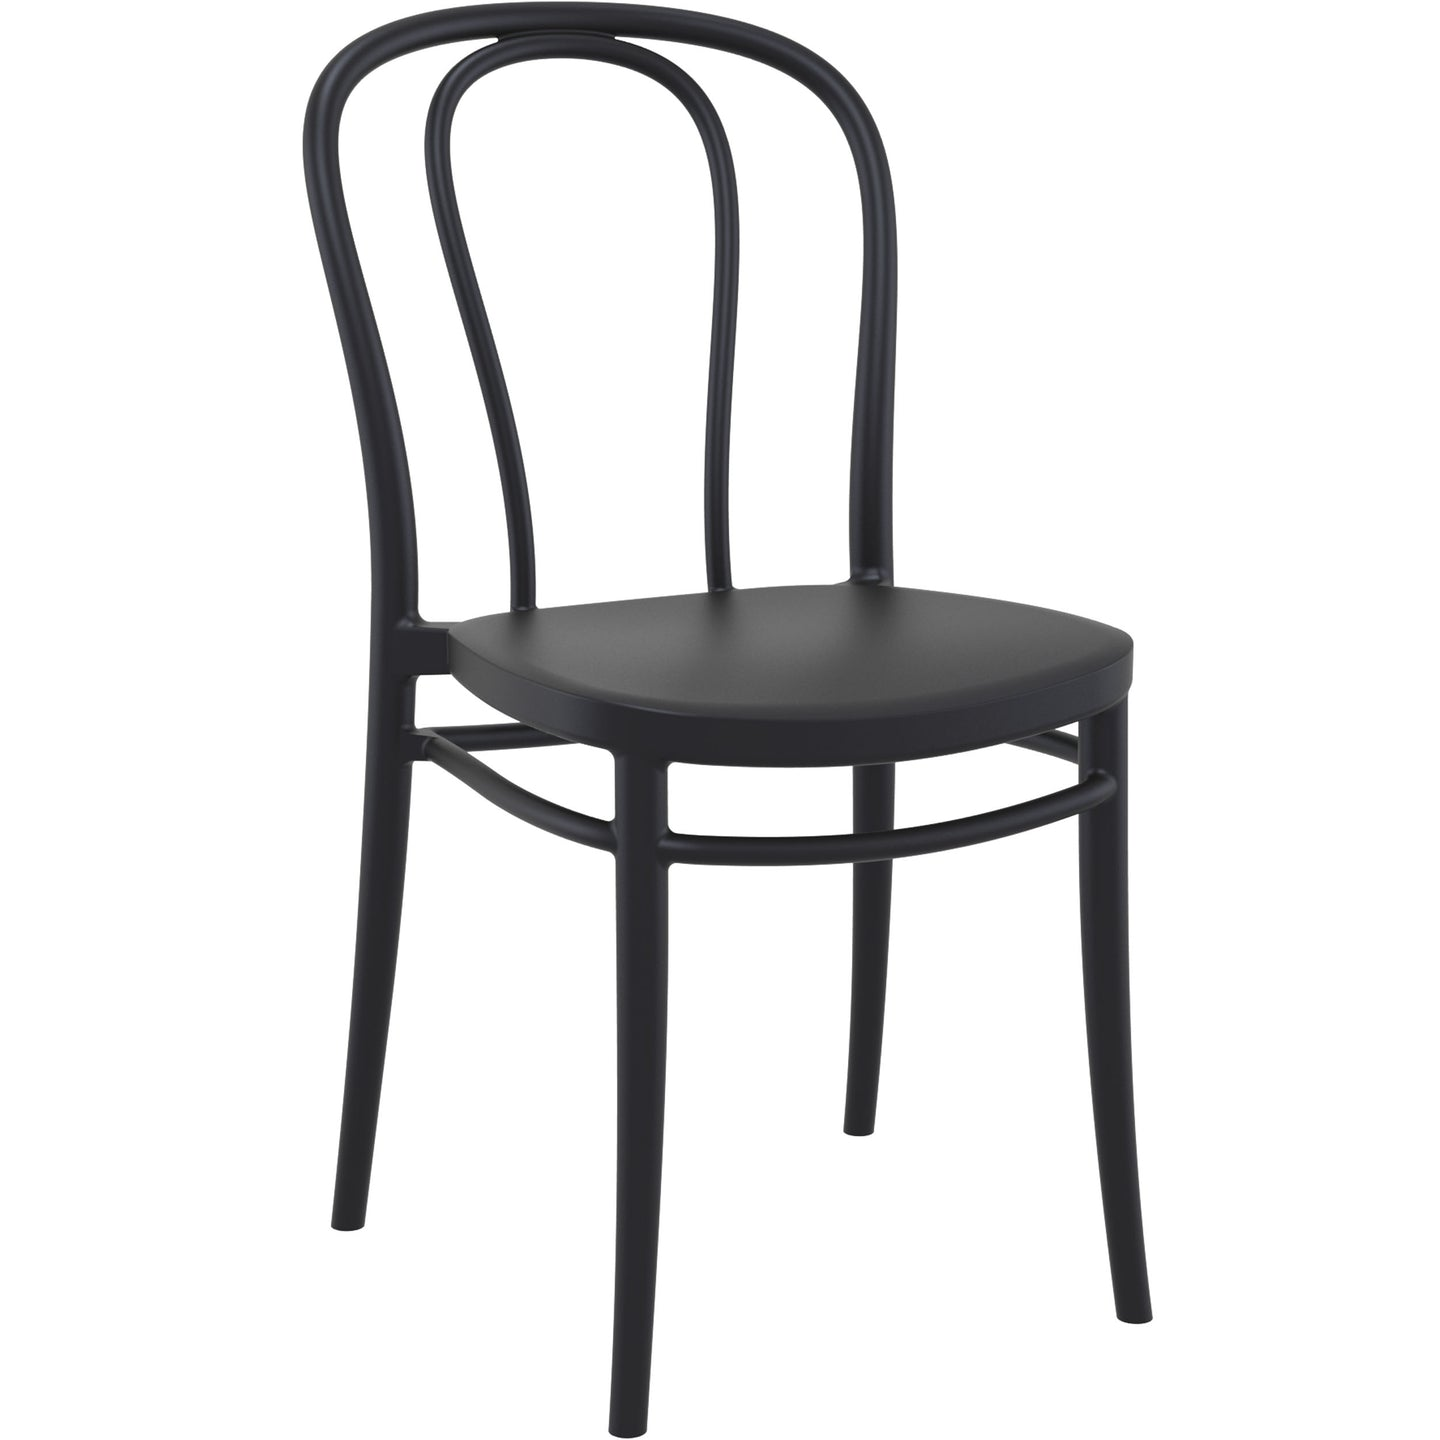 VICTOR STACKING CHAIR